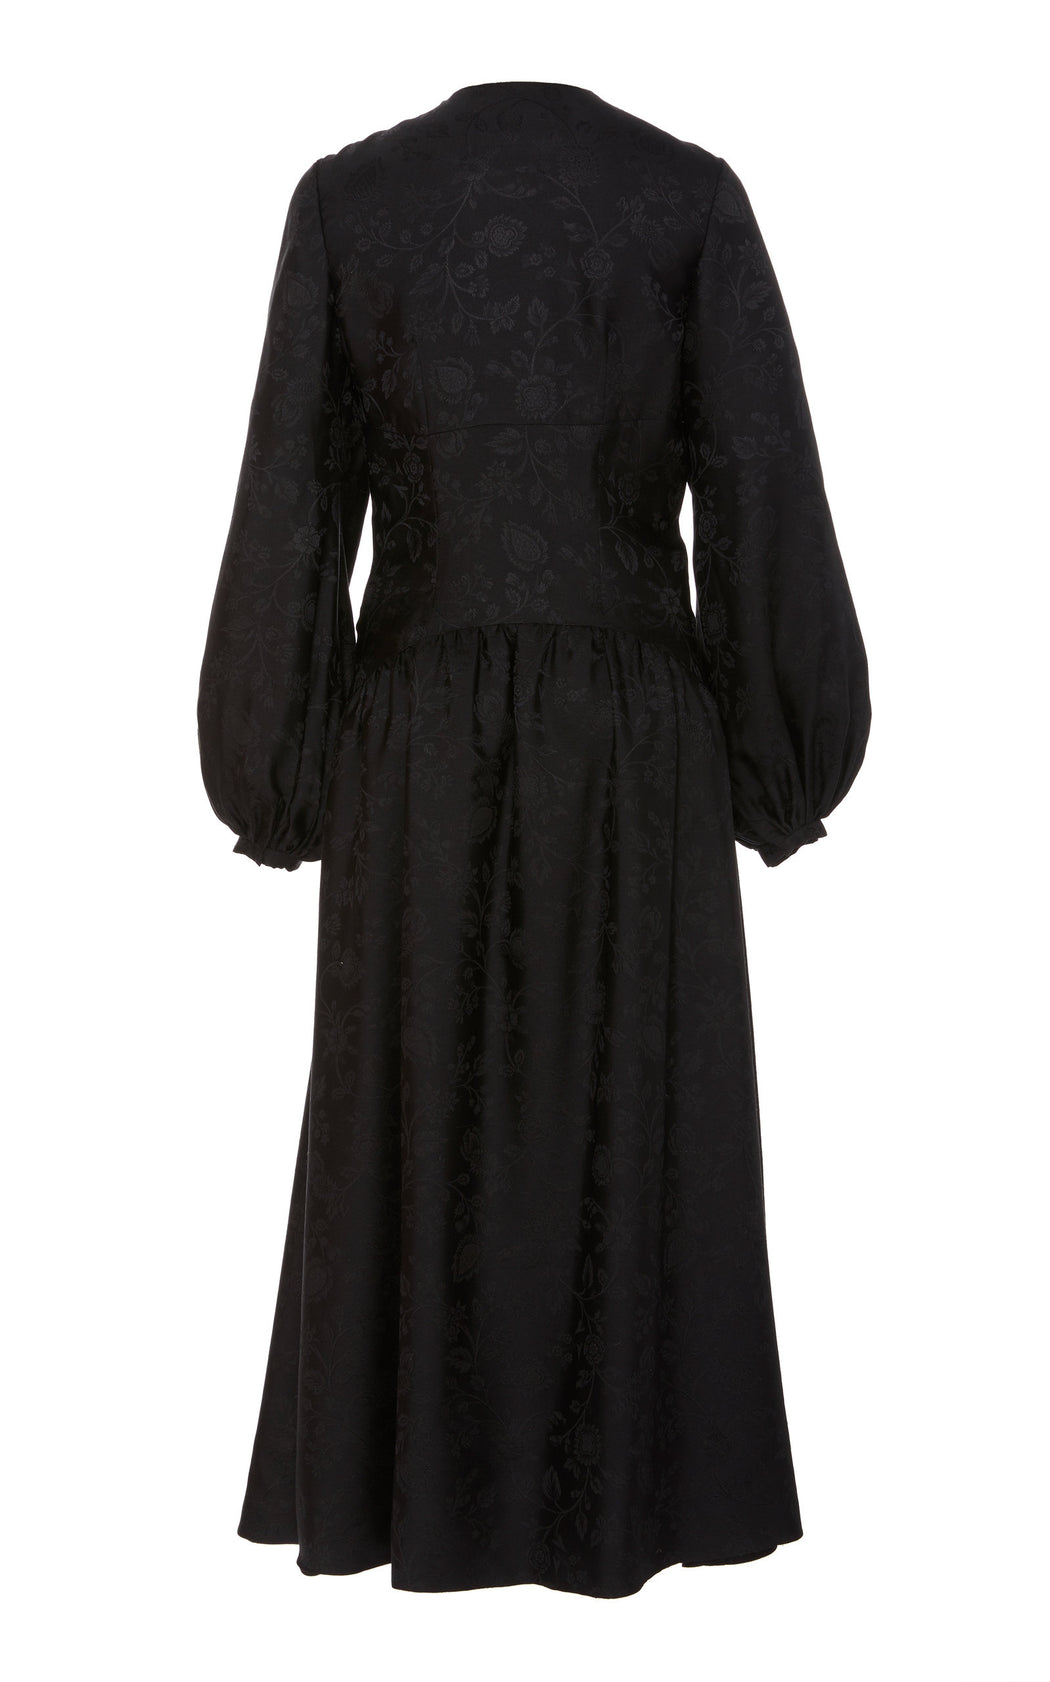 Marguerite Black Silk Floral Brocade Dress